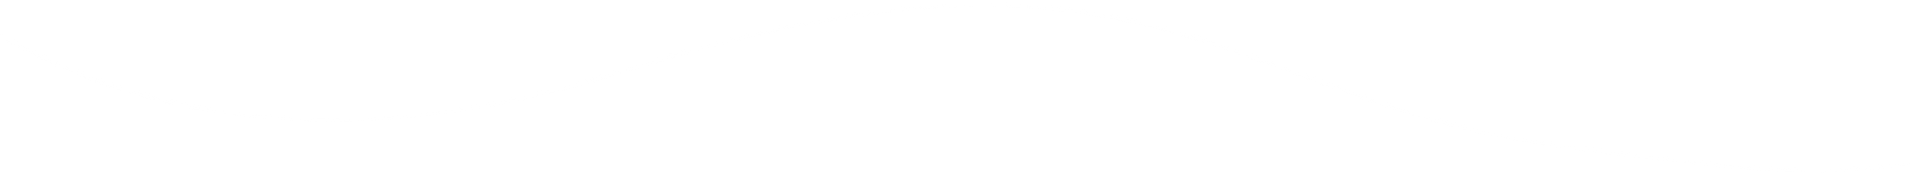 curved_top_white.png